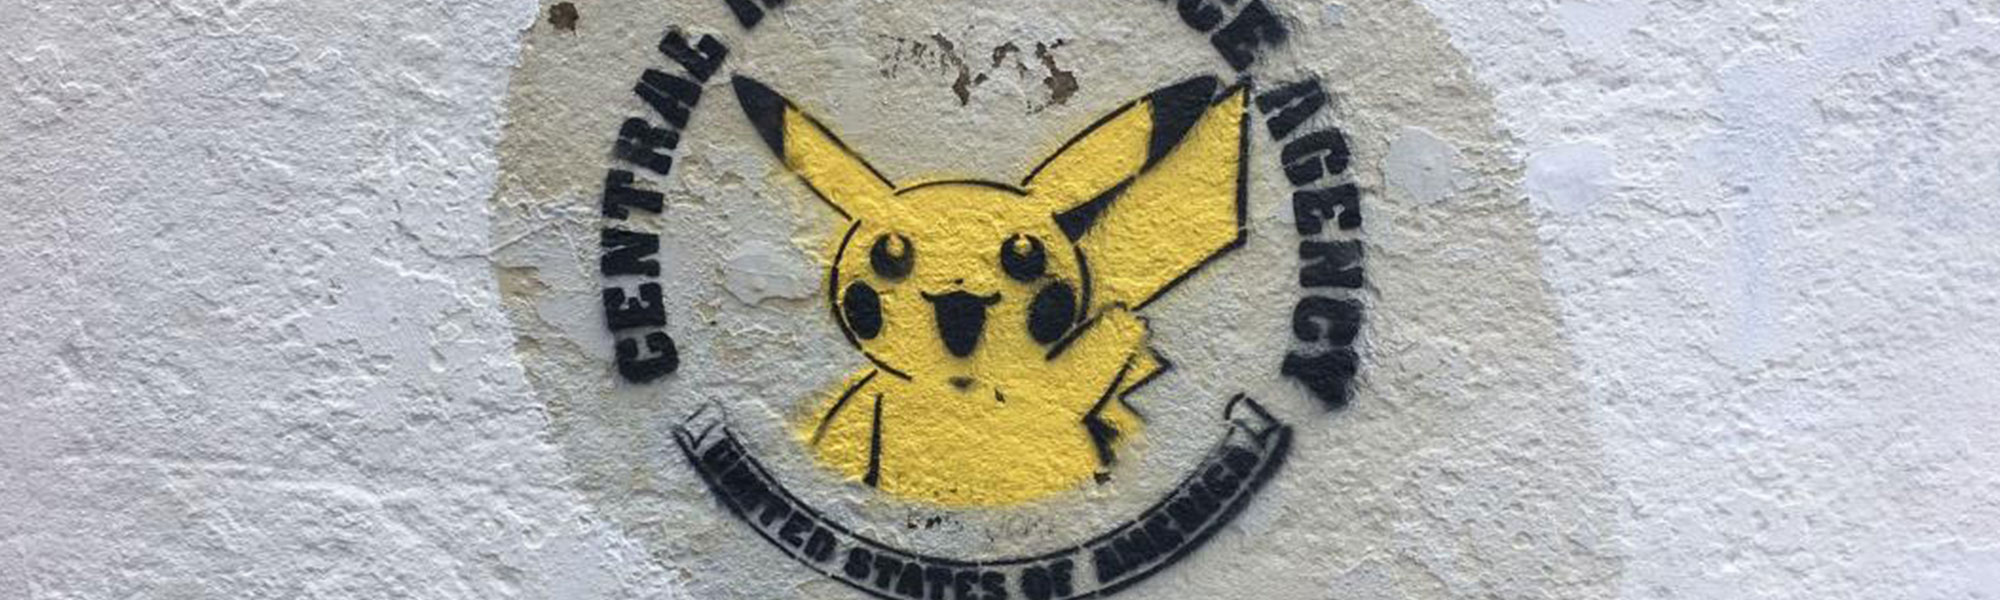 Pikachu and co: Japanese influences in Louvain